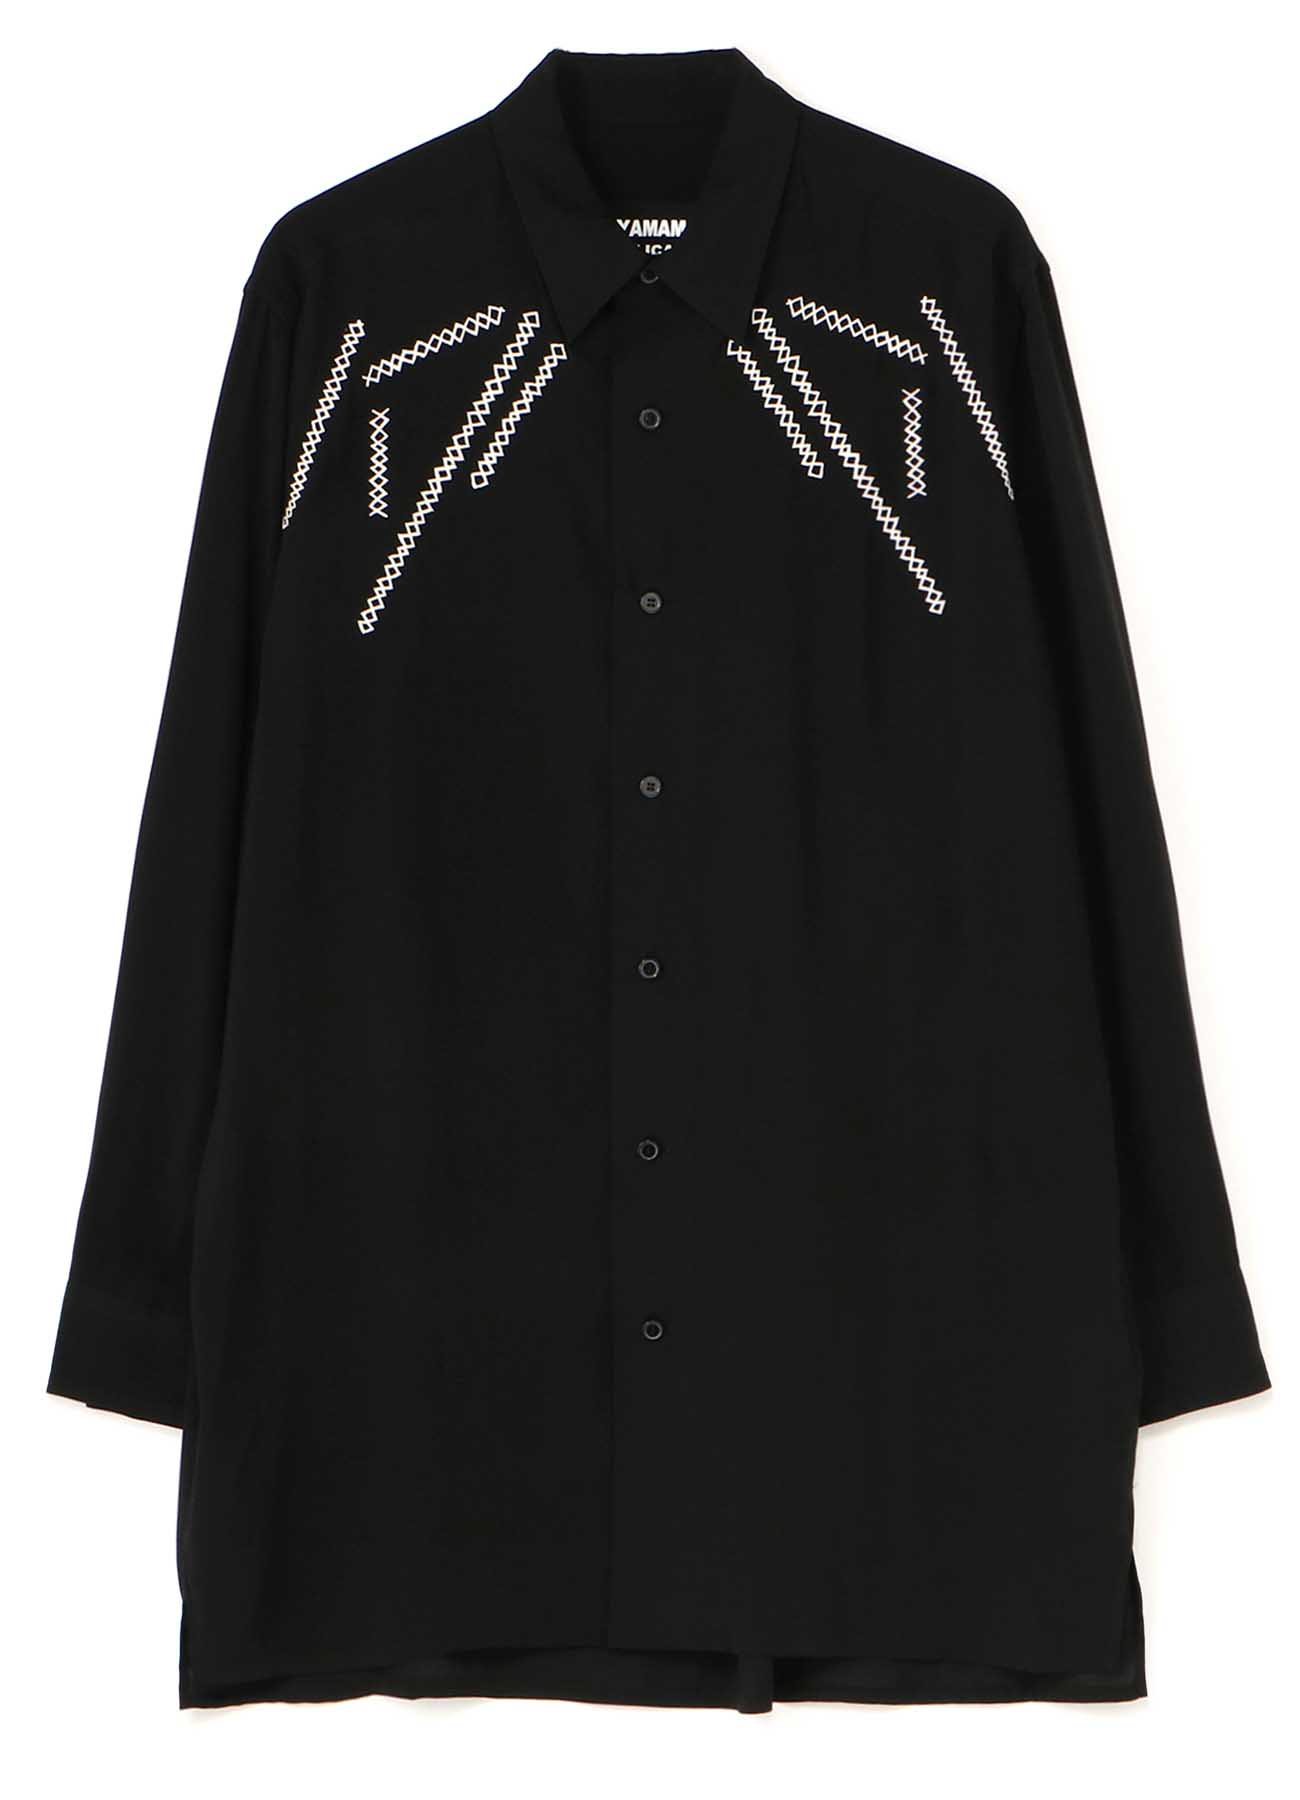 REPLICA 1989-1990 A/W EMBROIDERY CLASSIC BIG BLOUSE